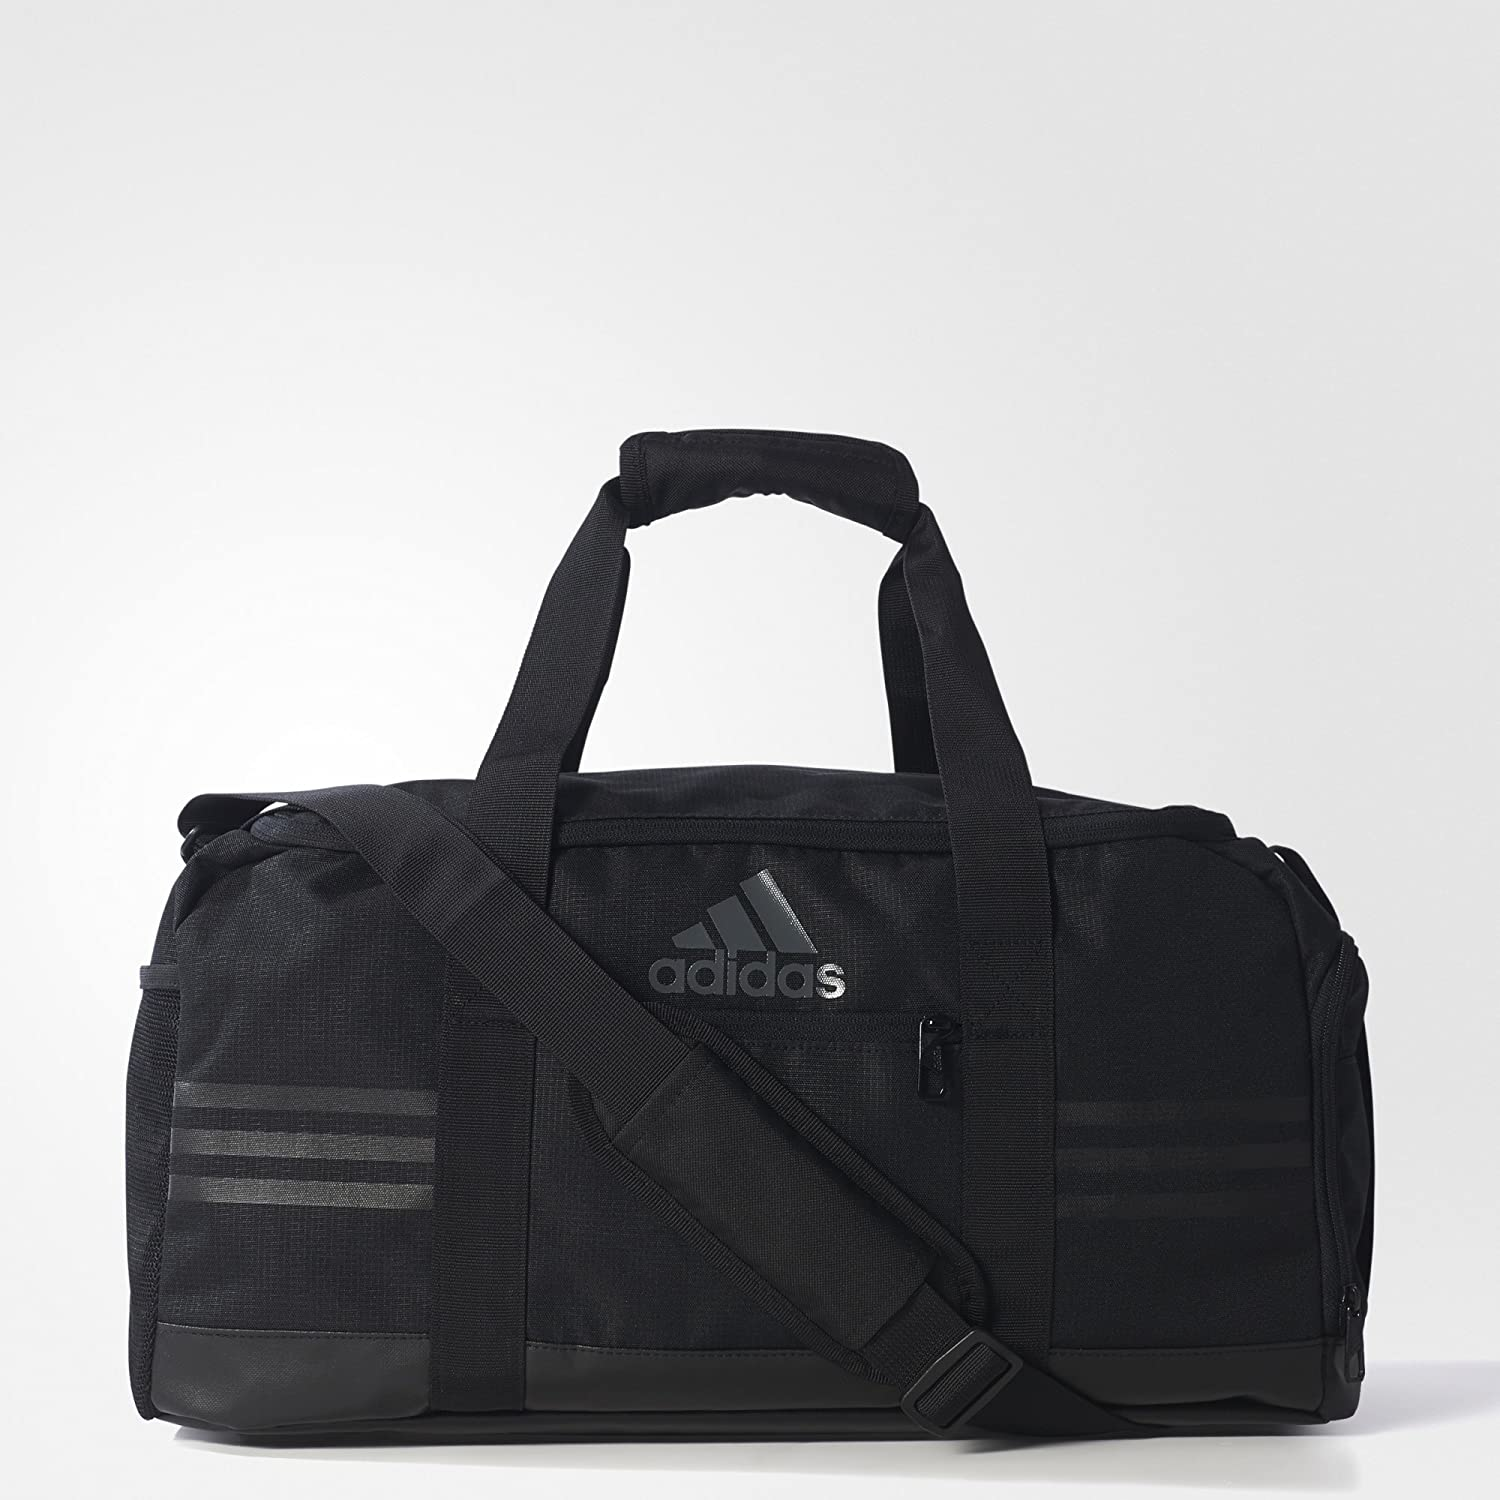 adidas Sporttasche 3 Stripes Performance Teambag M